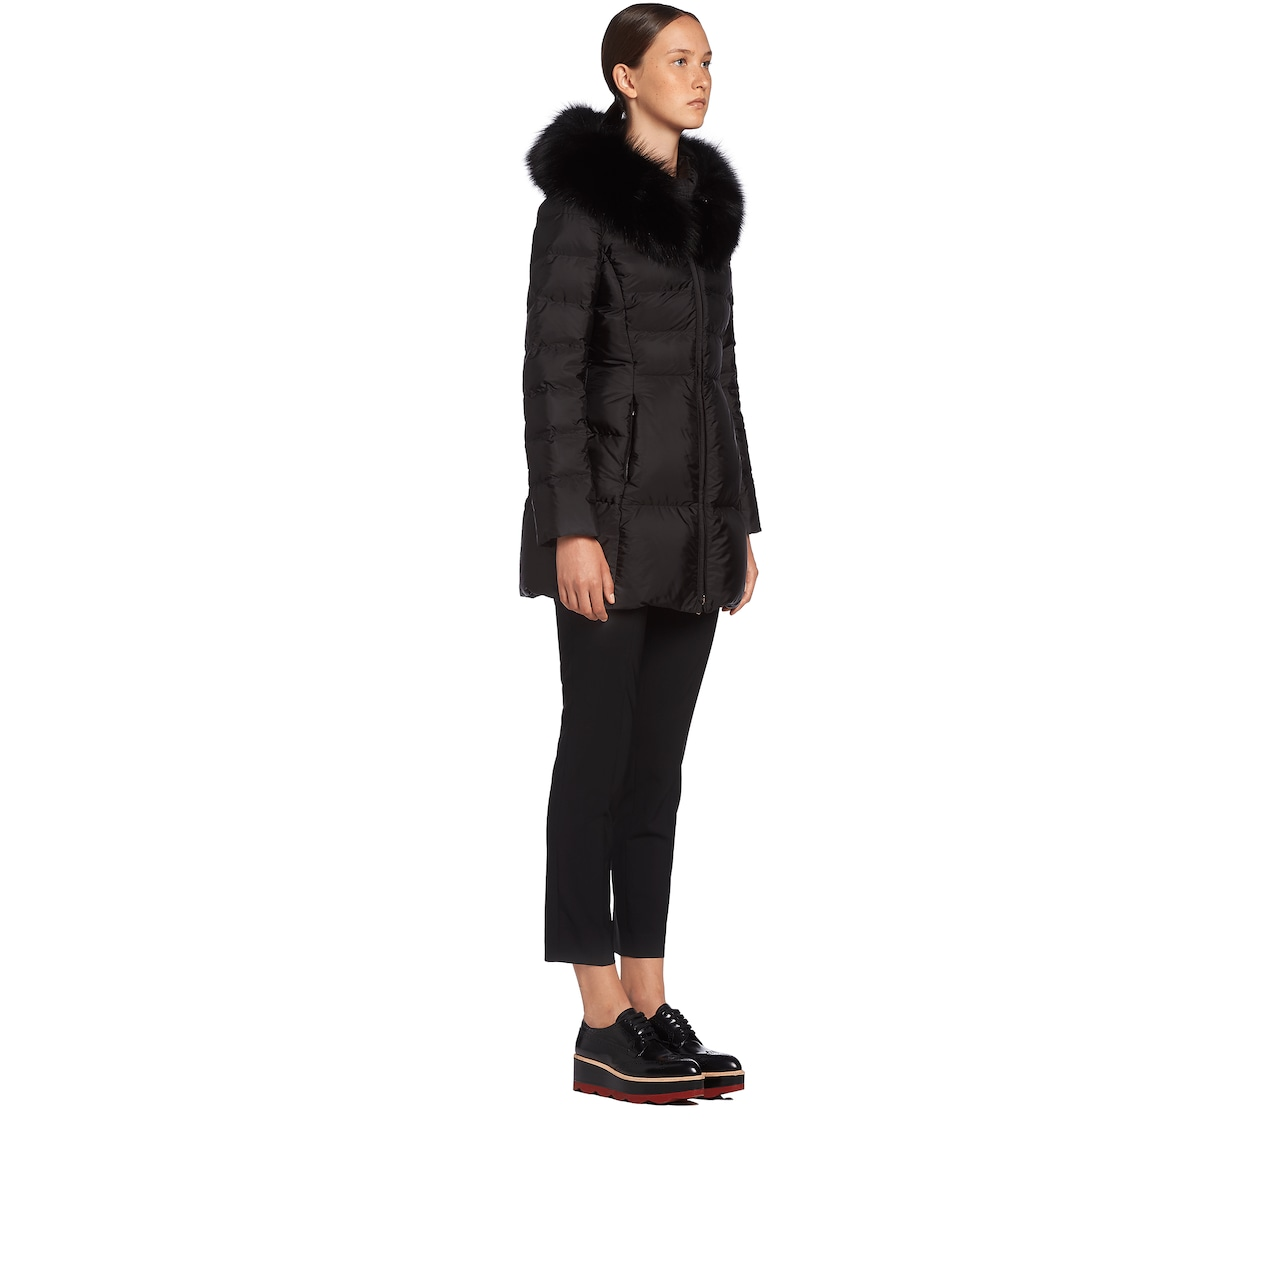 Prada Fur-Trimmed Nylon Down Jacket 3